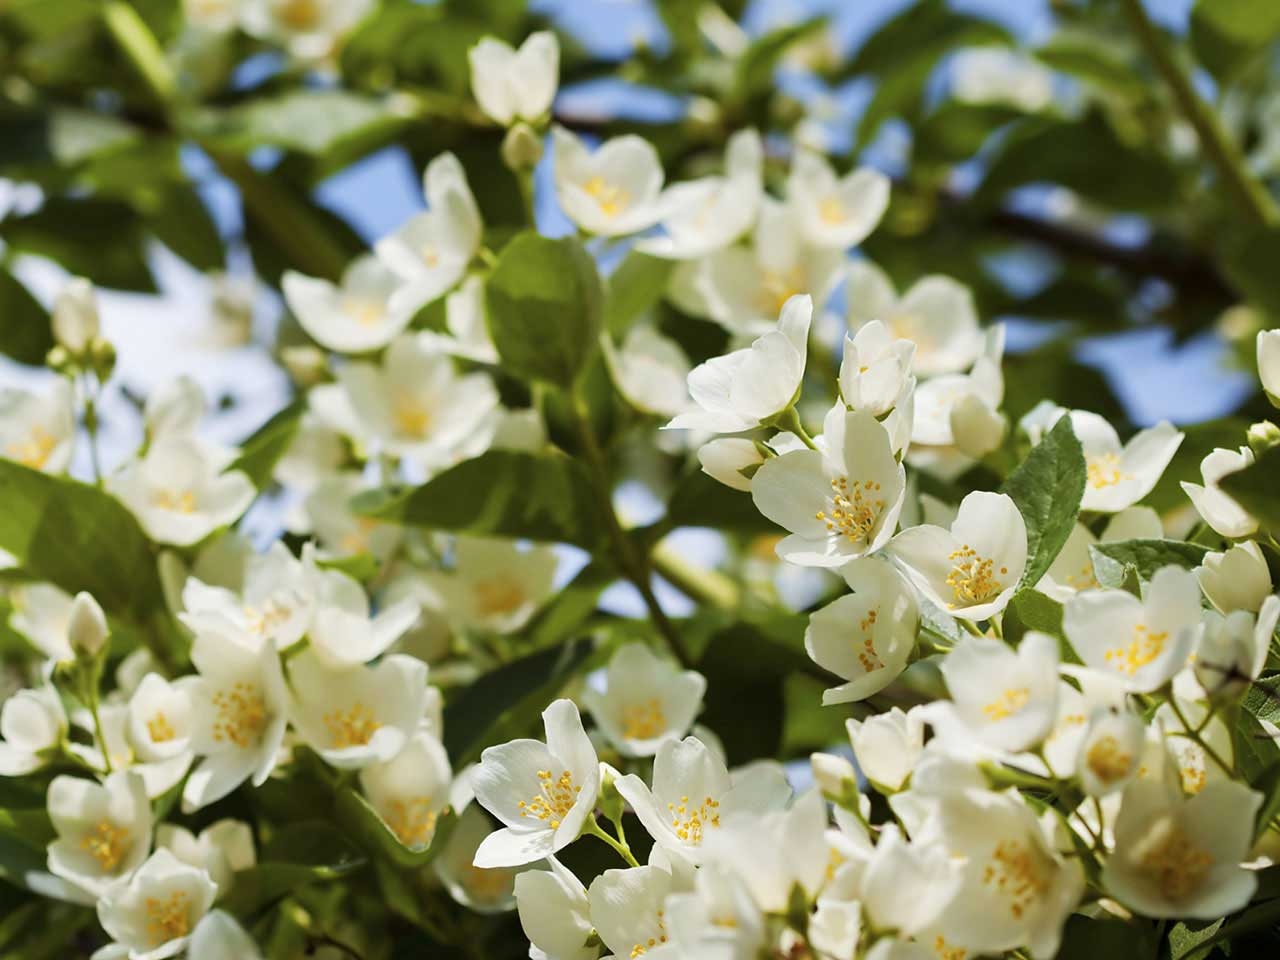 Choosing fragrant plants for your garden saga fragrant white and yellow jasmine flowers izmirmasajfo